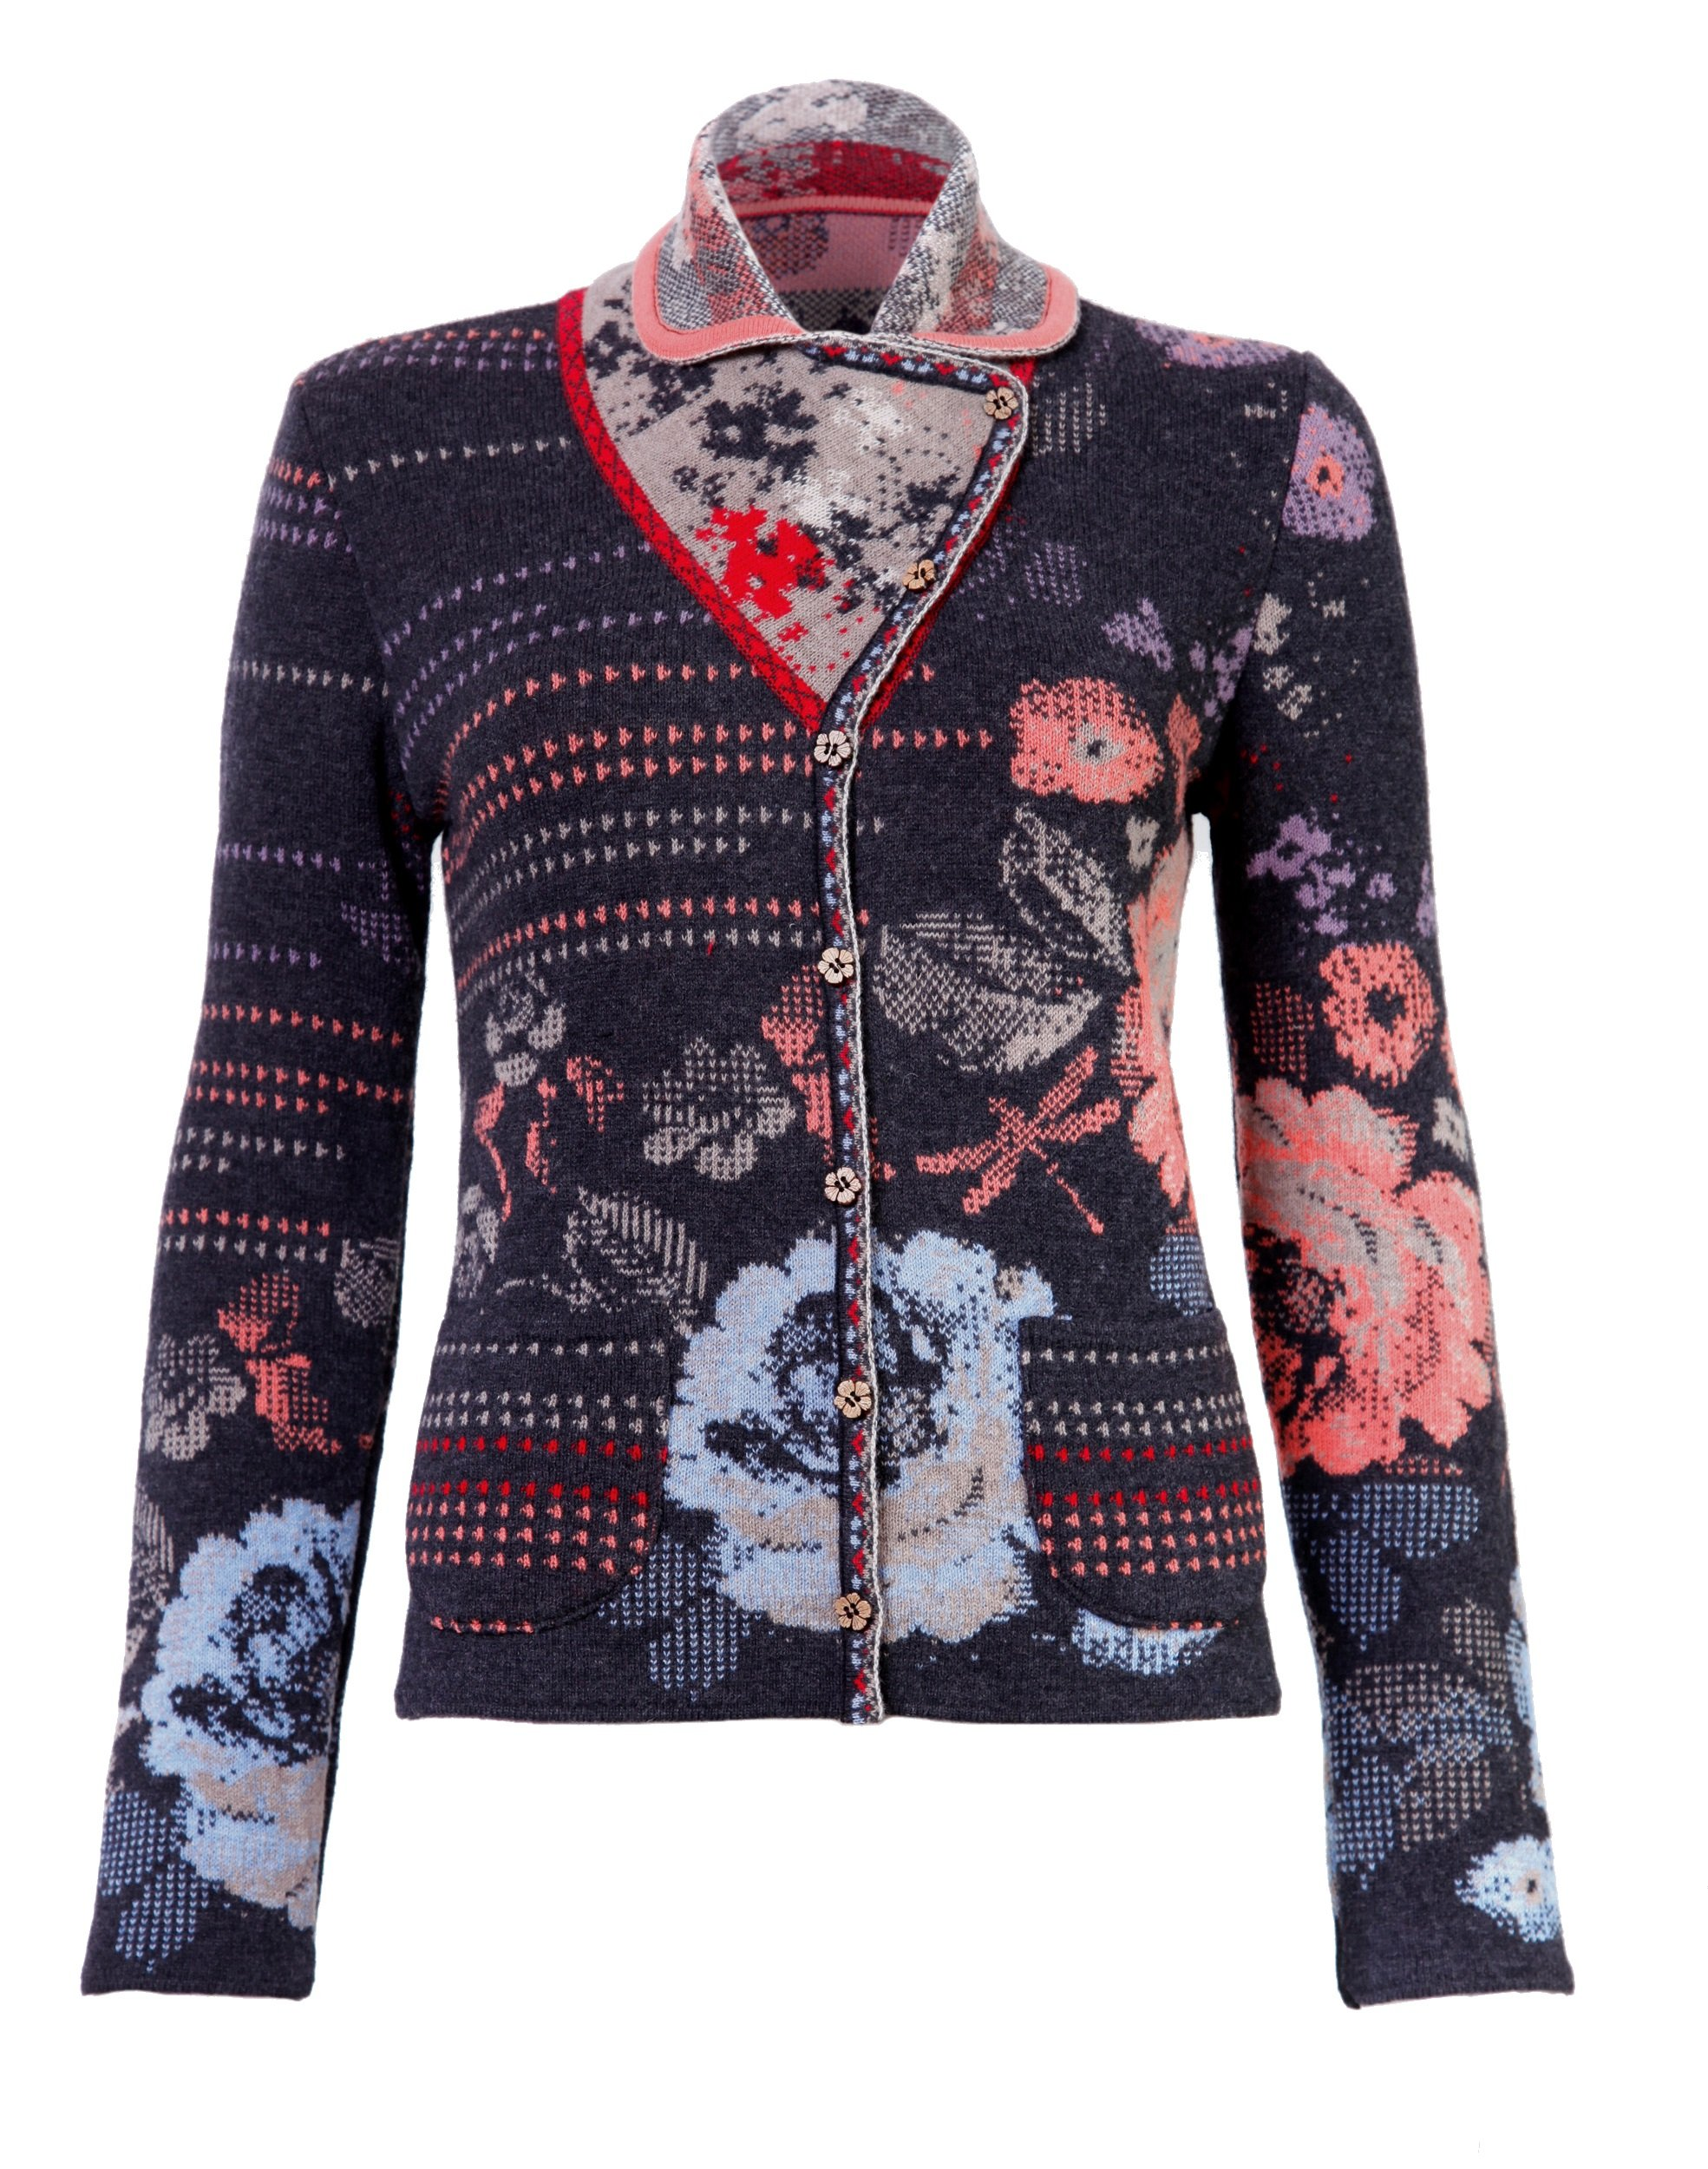 IVKO Short Lambswool Sweater wth Floral Pattern, Front Button Closure, Charcoal Grey, US 10 - EUR 40